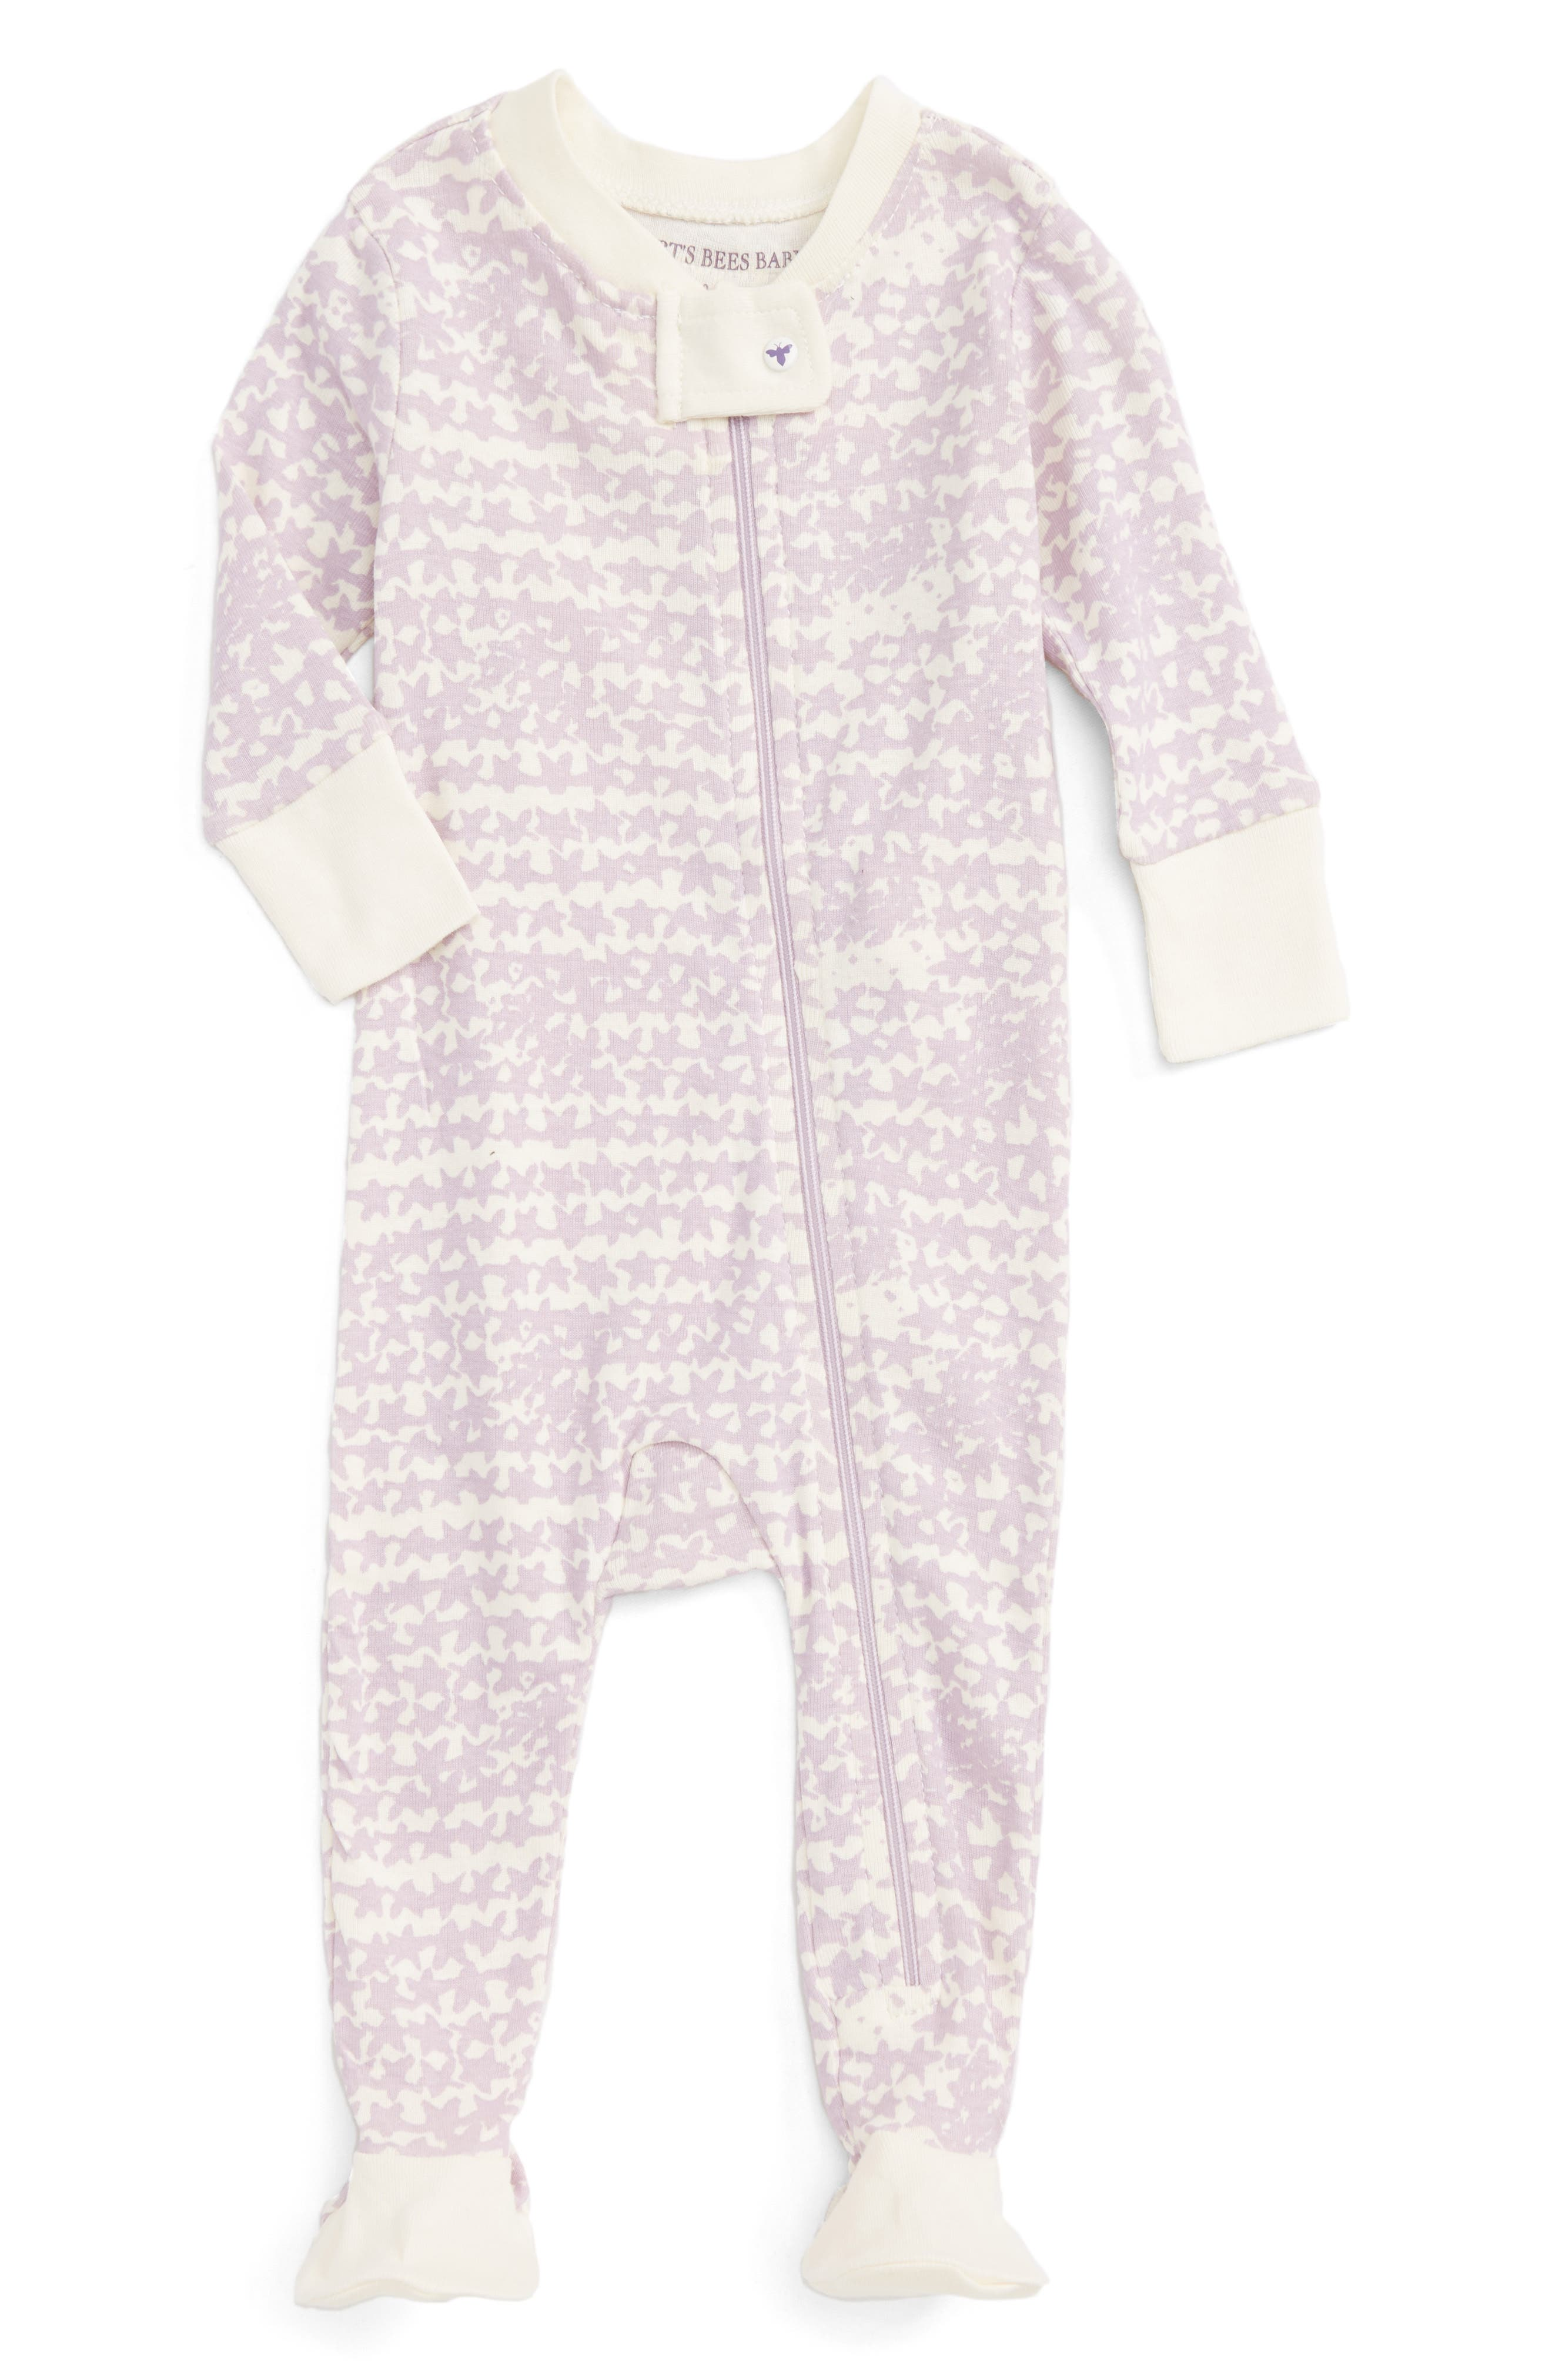 Alternate Image 1 Selected - Burt's Bees Baby Clustered Star Fitted One-Piece Footed Pajamas (Baby Girls)